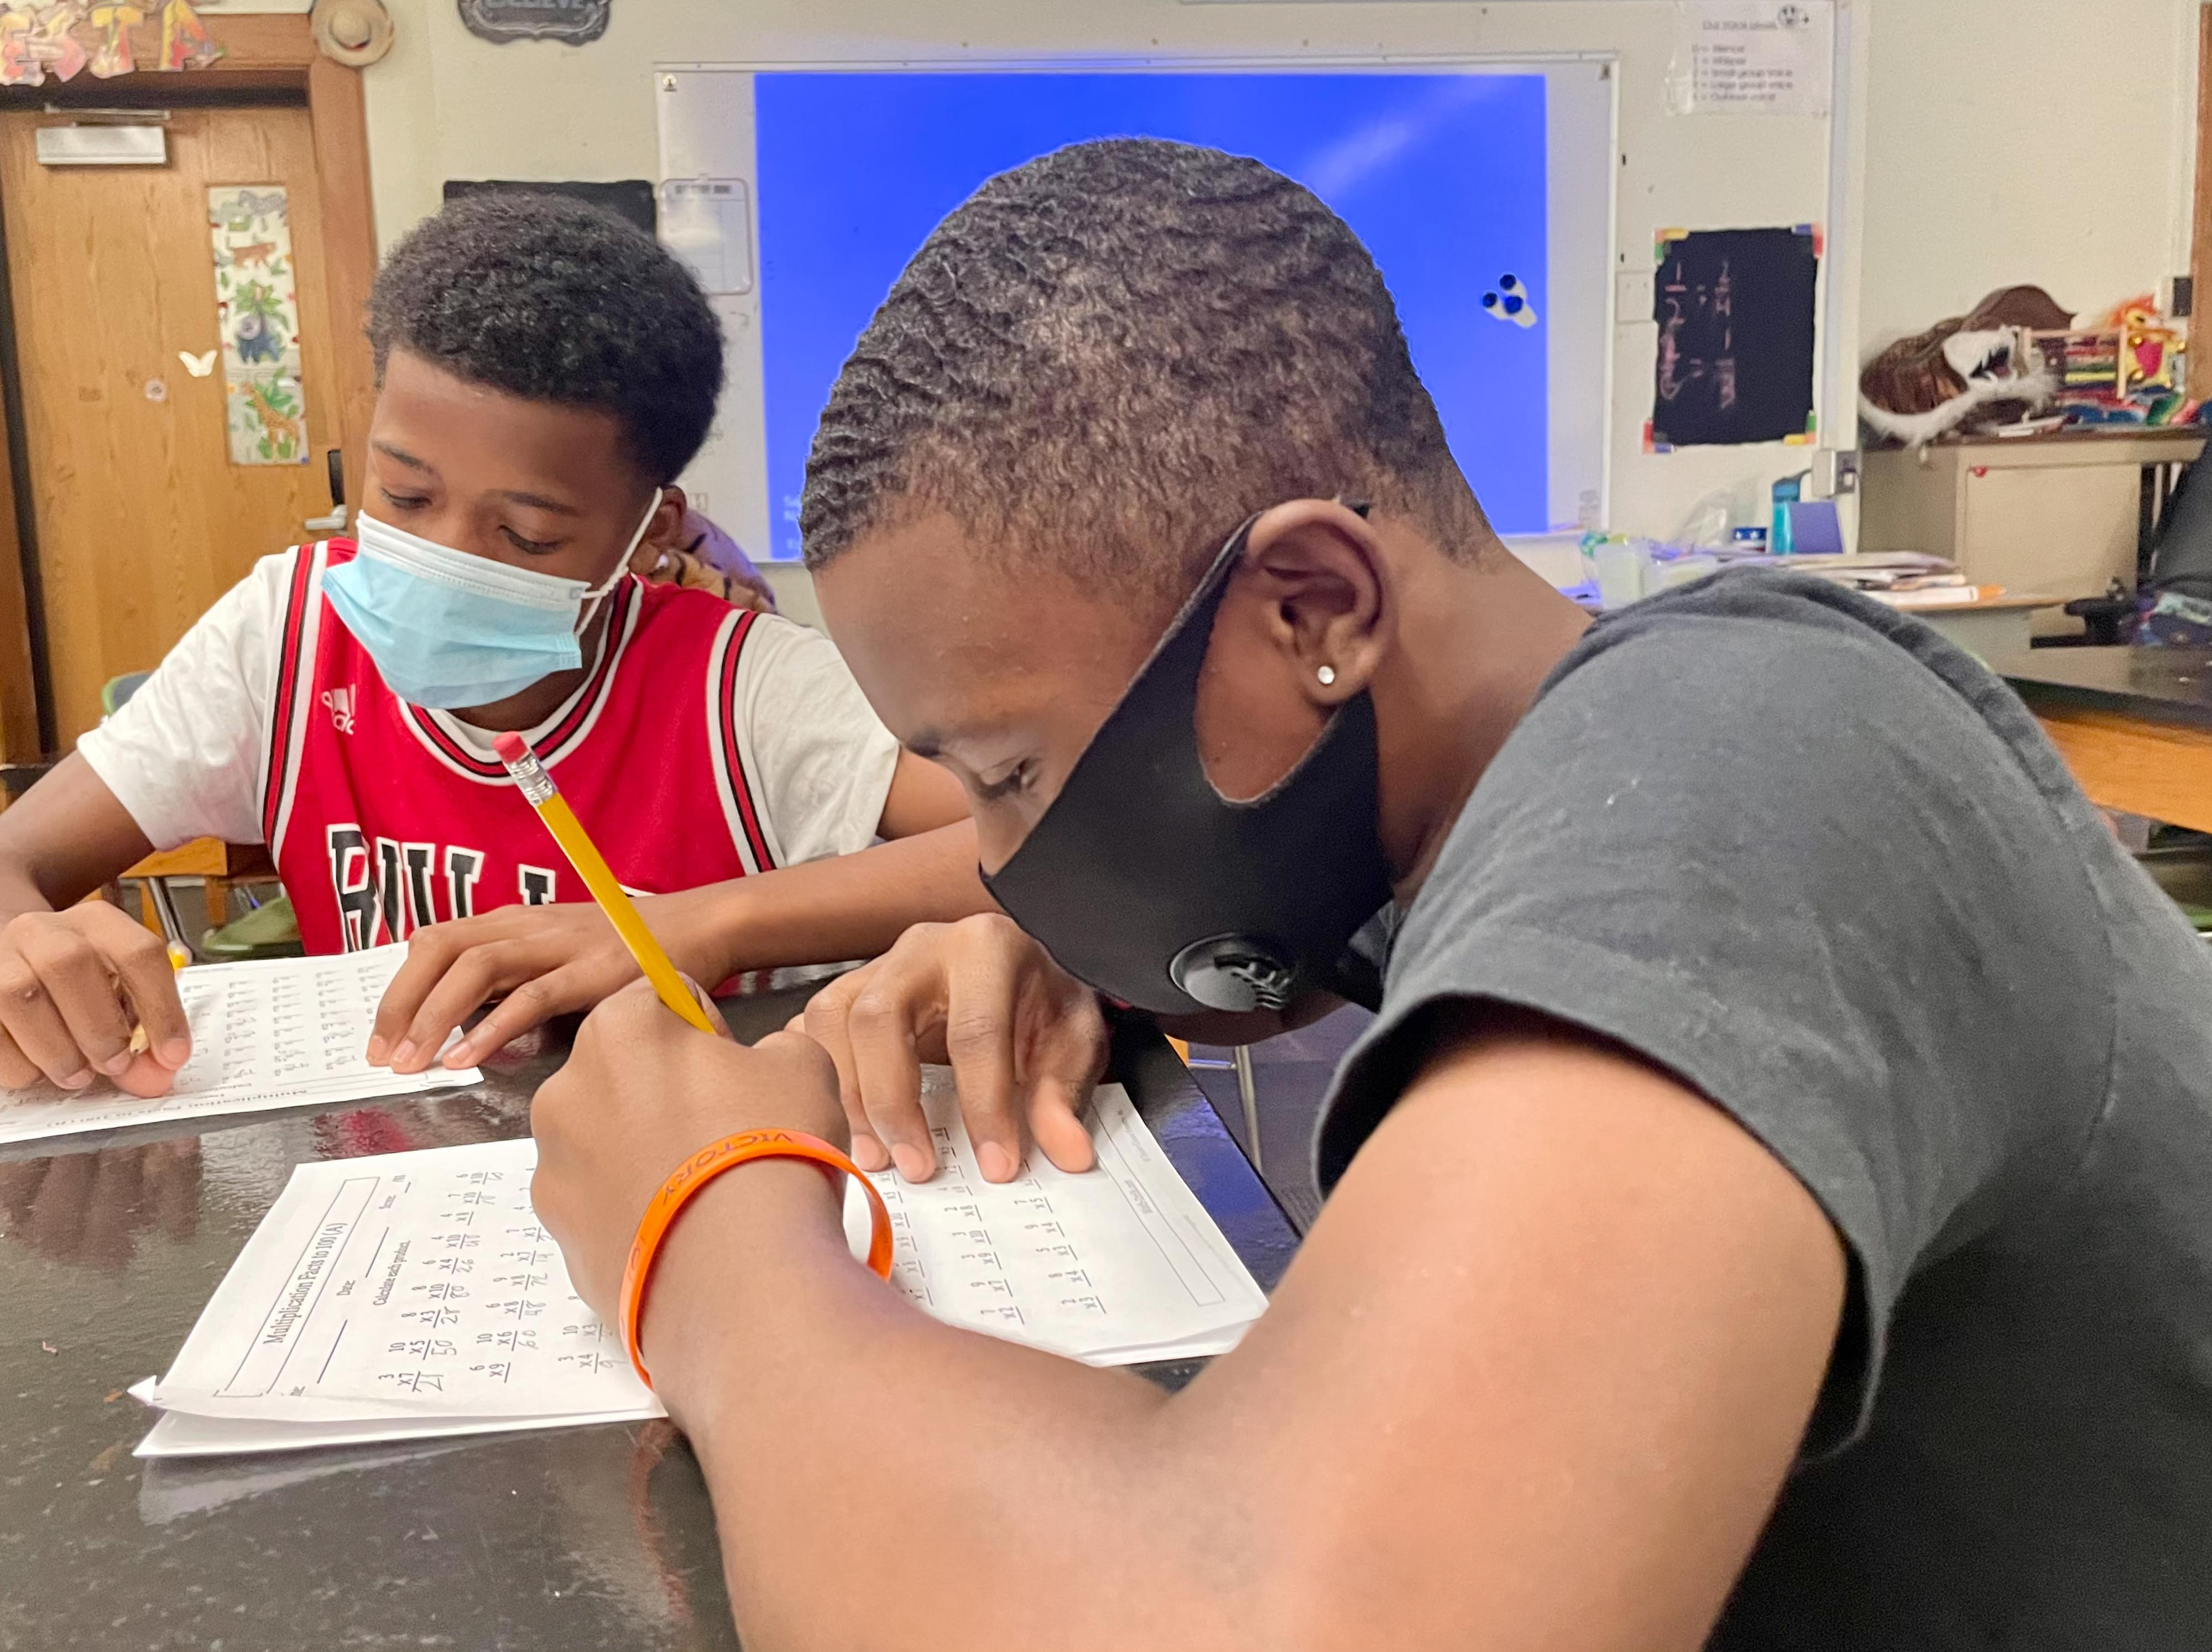 Two male middle school students work on mathematics worksheets at their desk.